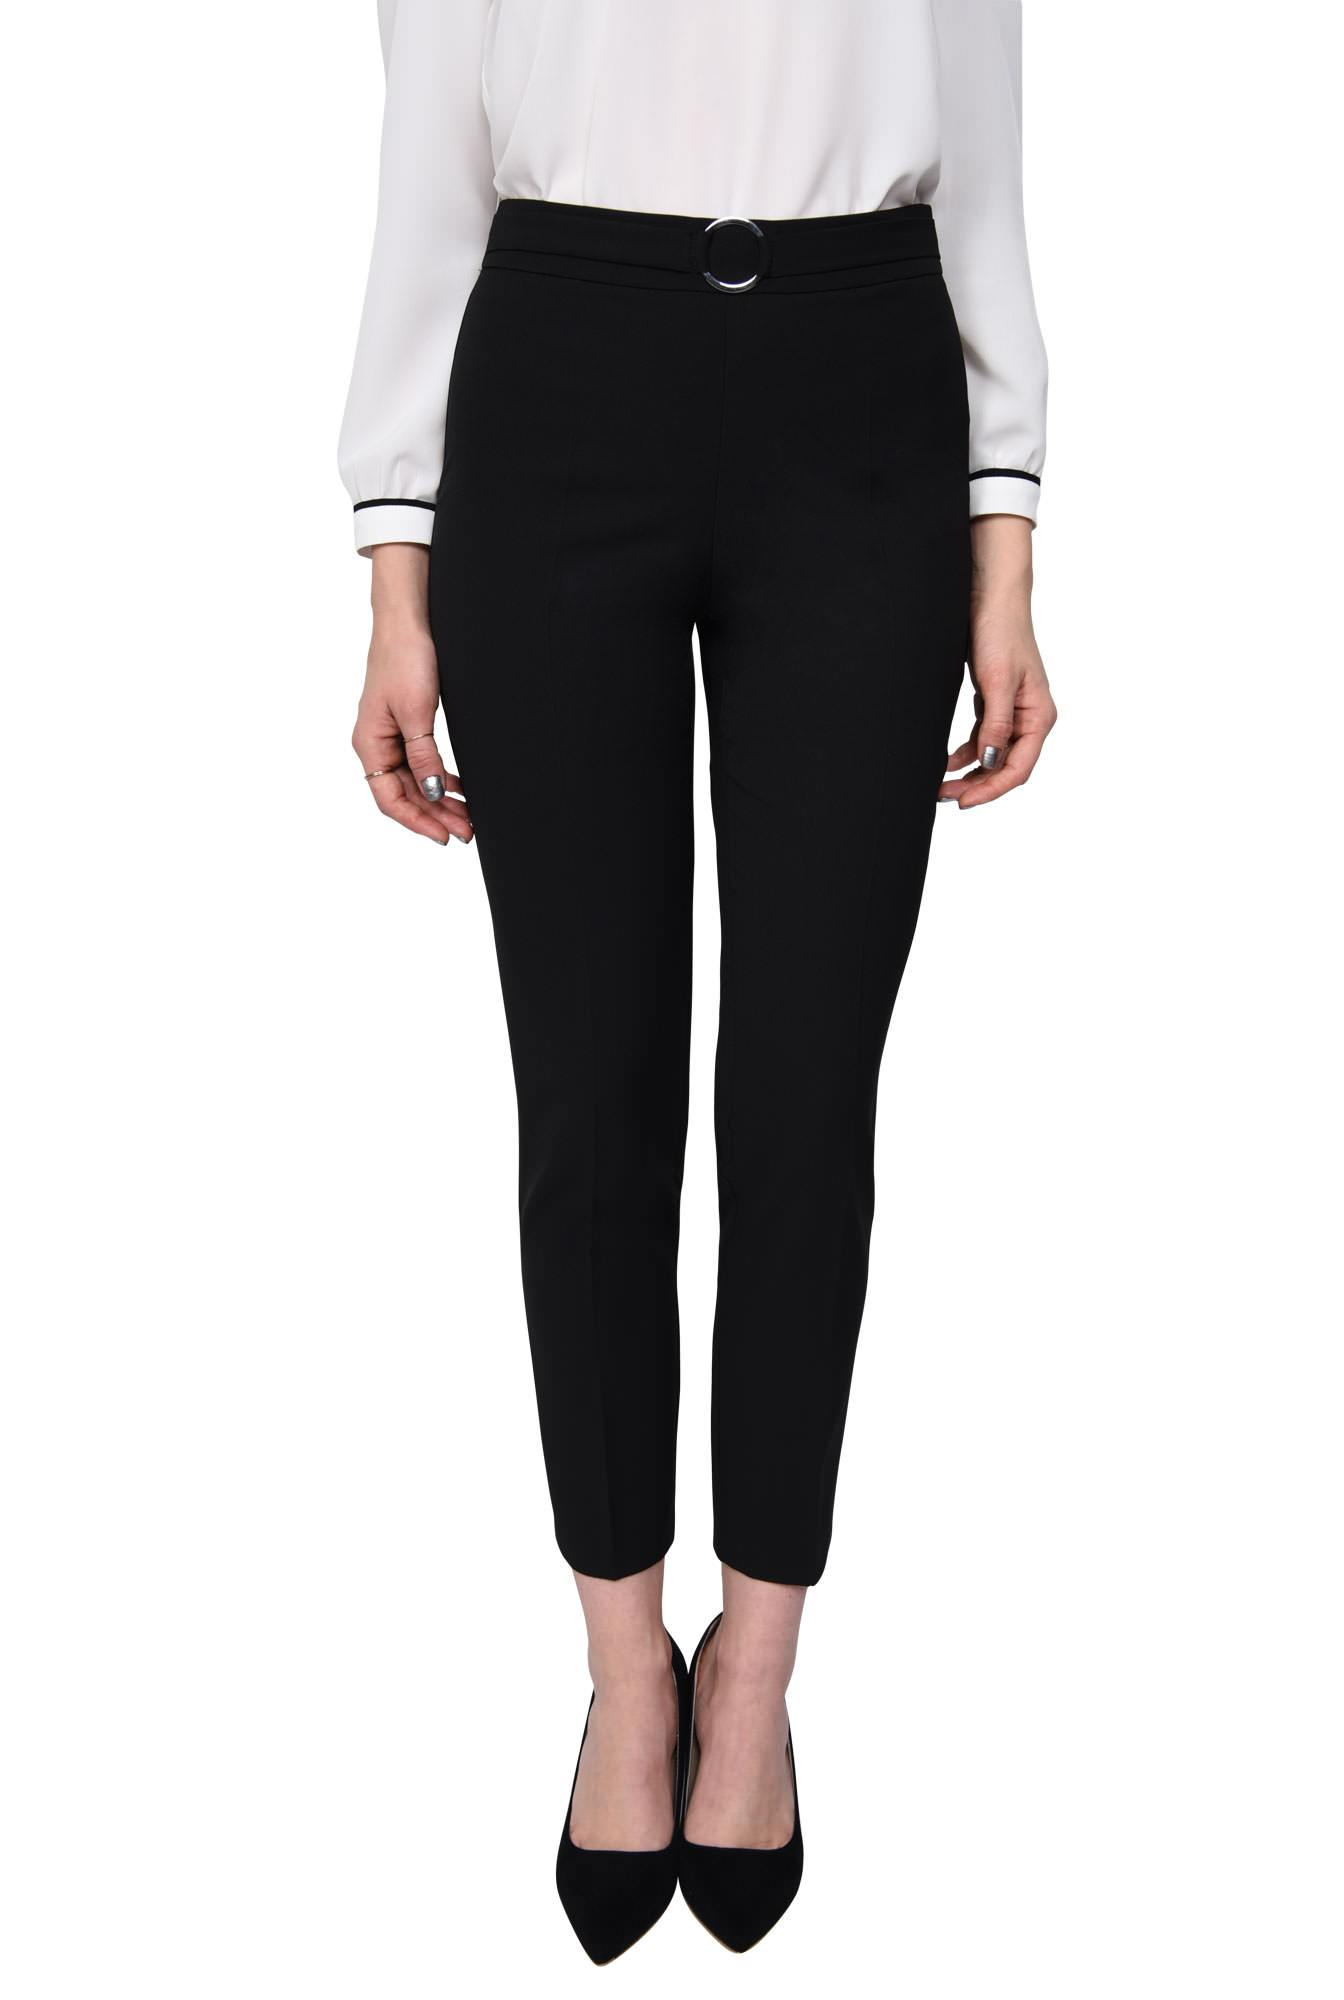 2 - PANTALON OFFICE CONIC PT 127-NEGRU